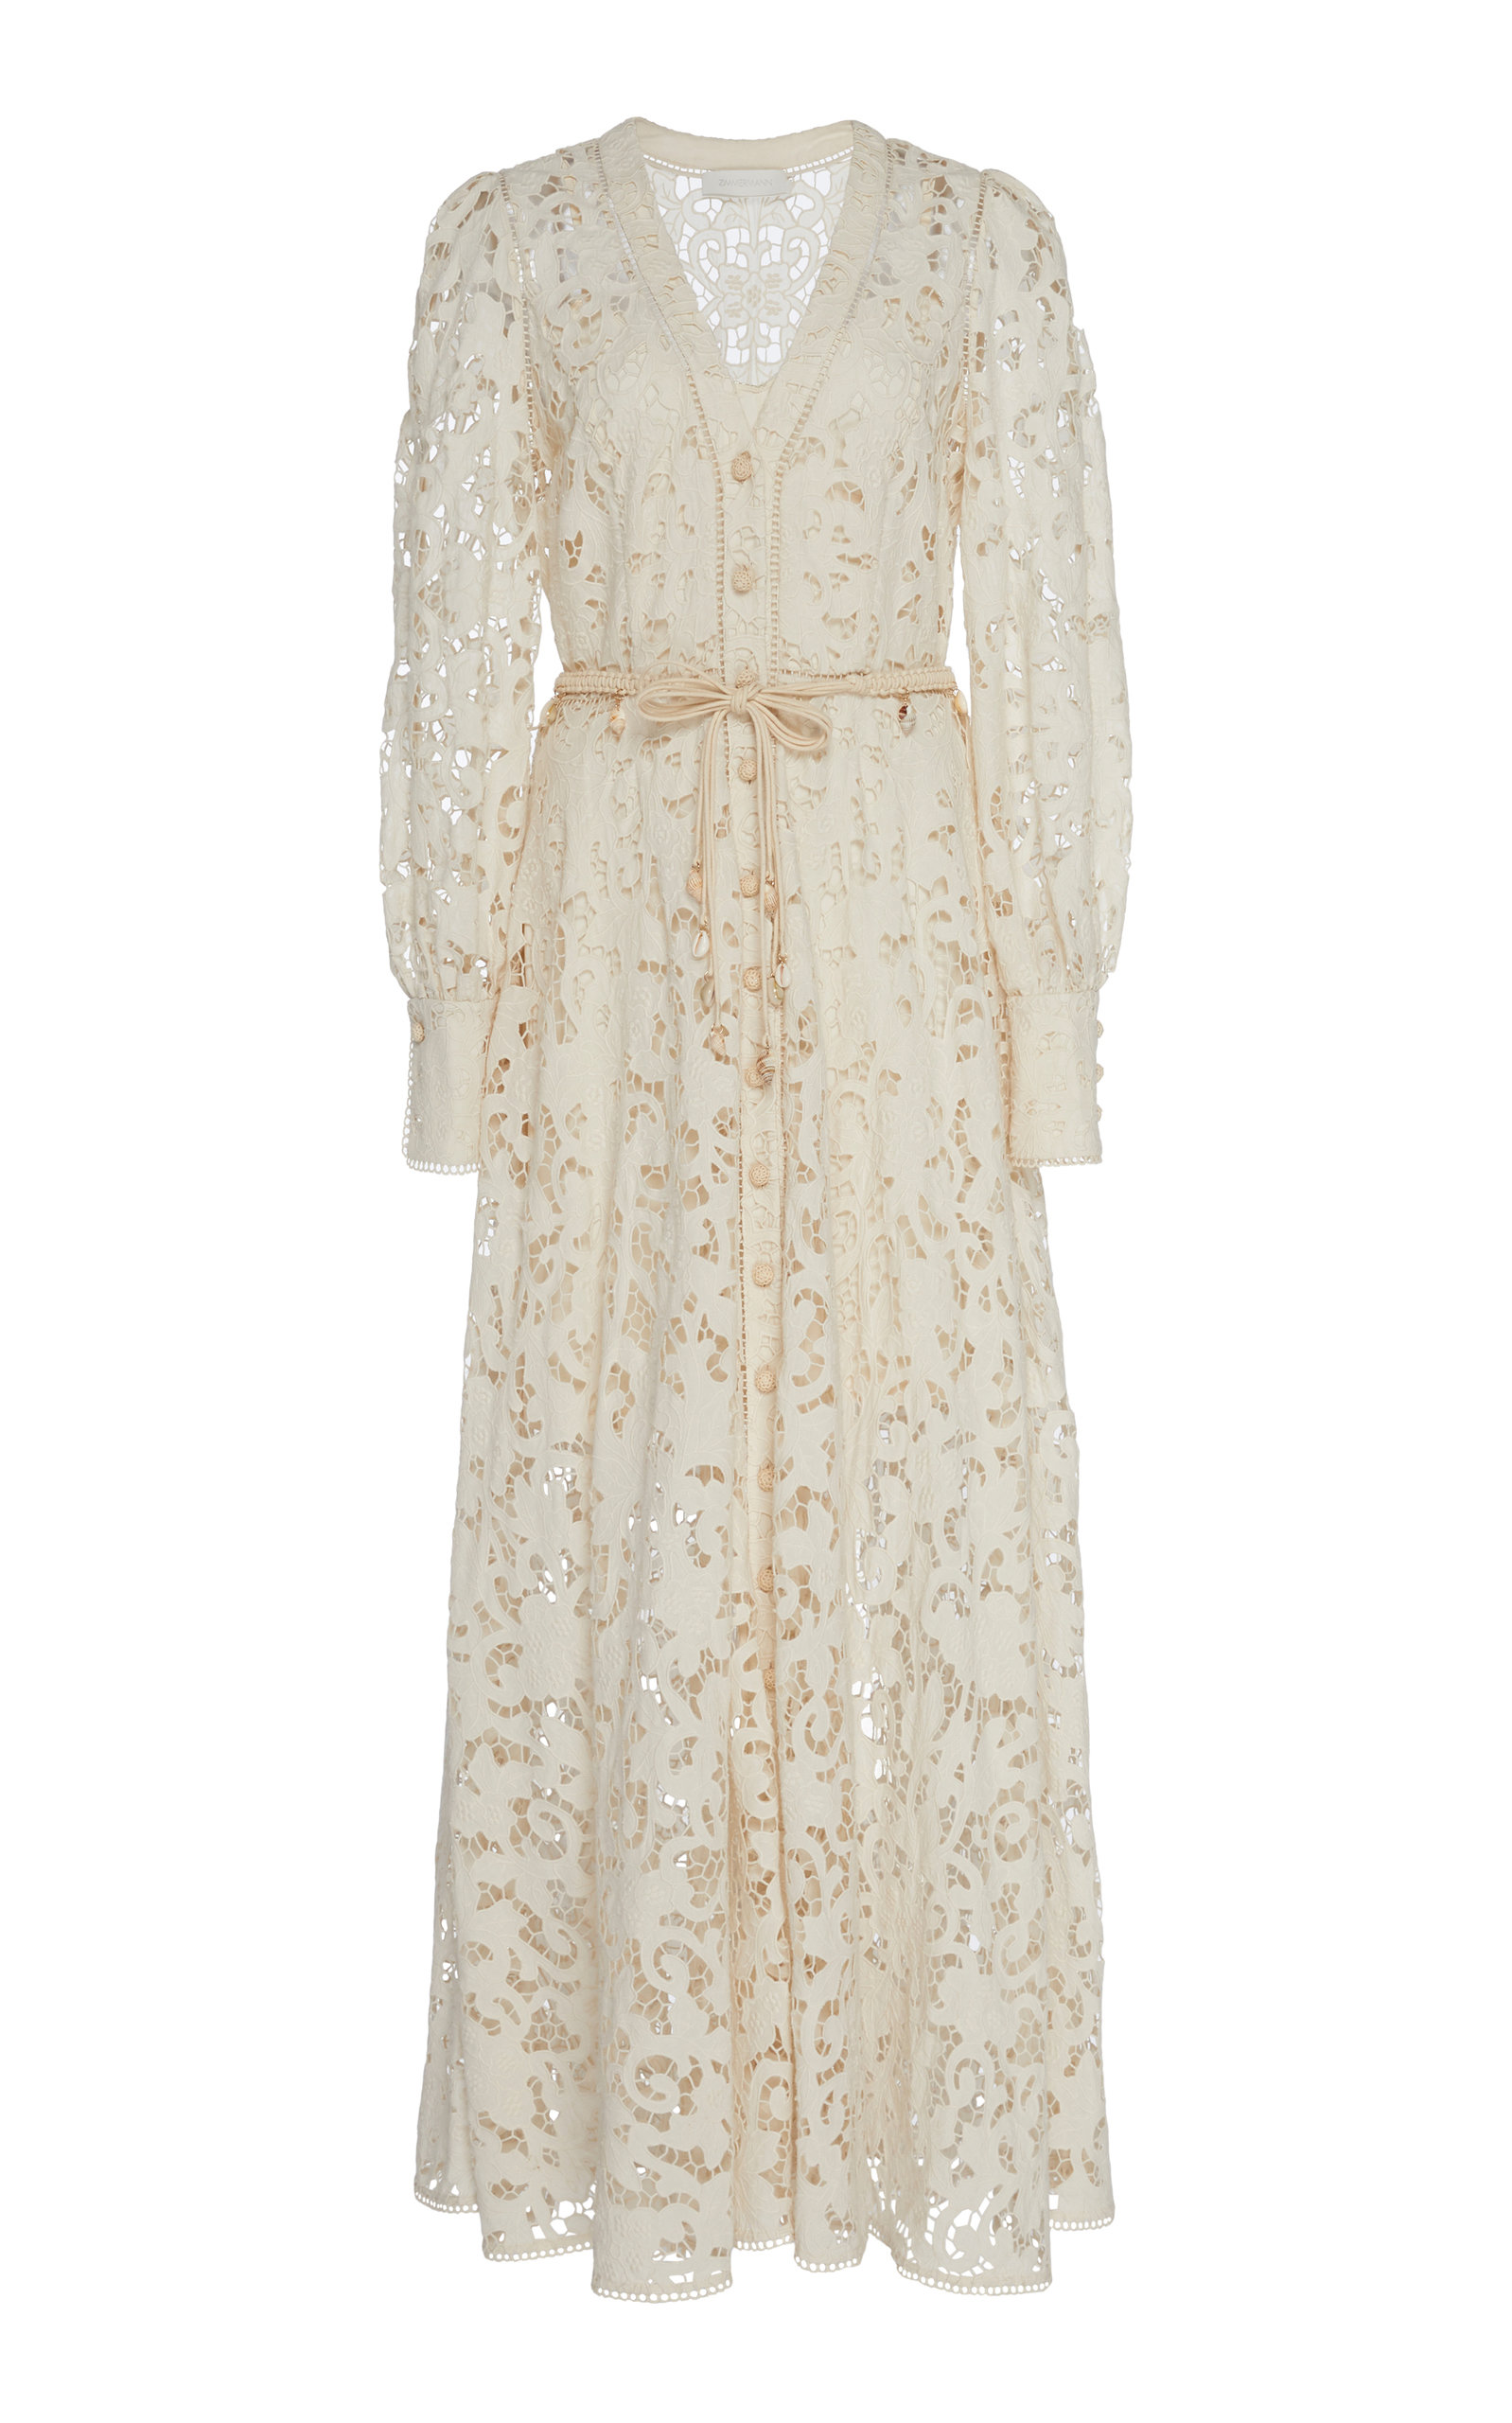 Buy Zimmermann Bonita Bow-Detailed Crochet-Knit Cotton Lace Dress online, shop Zimmermann at the best price